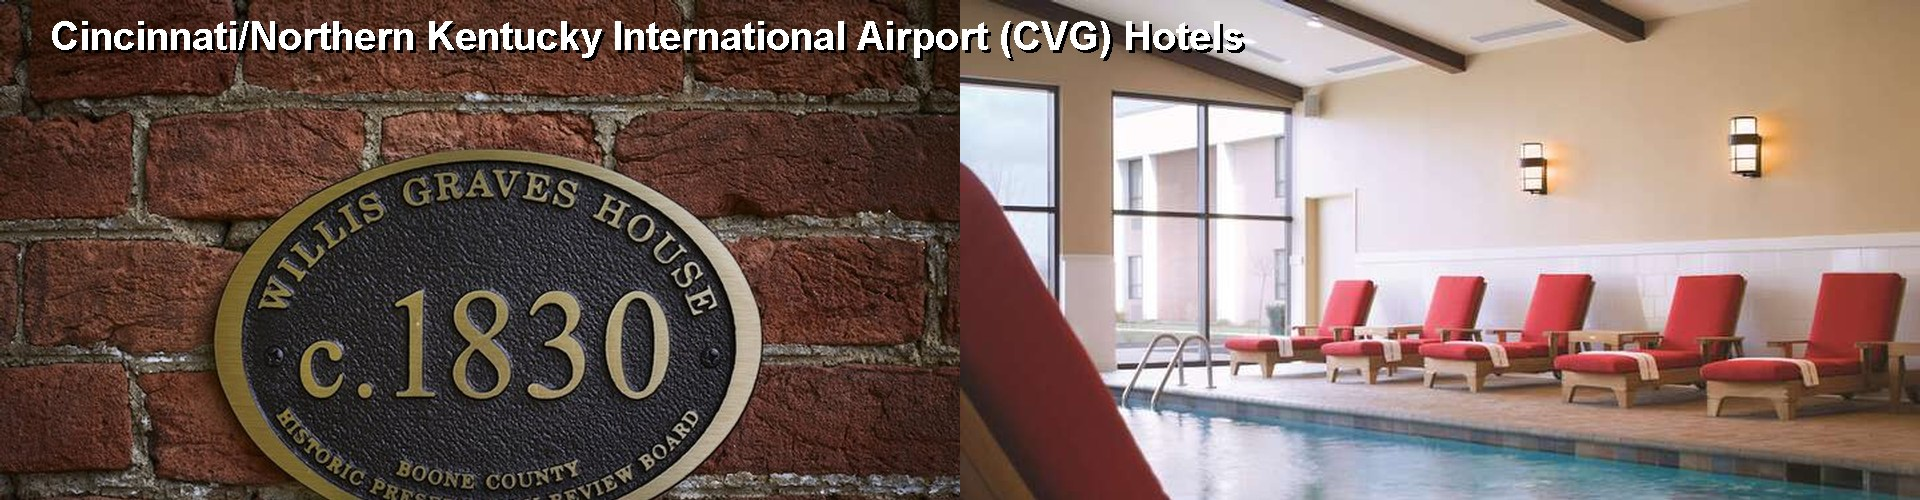 5 Best Hotels Near Cincinnati Northern Kentucky International Airport Cvg